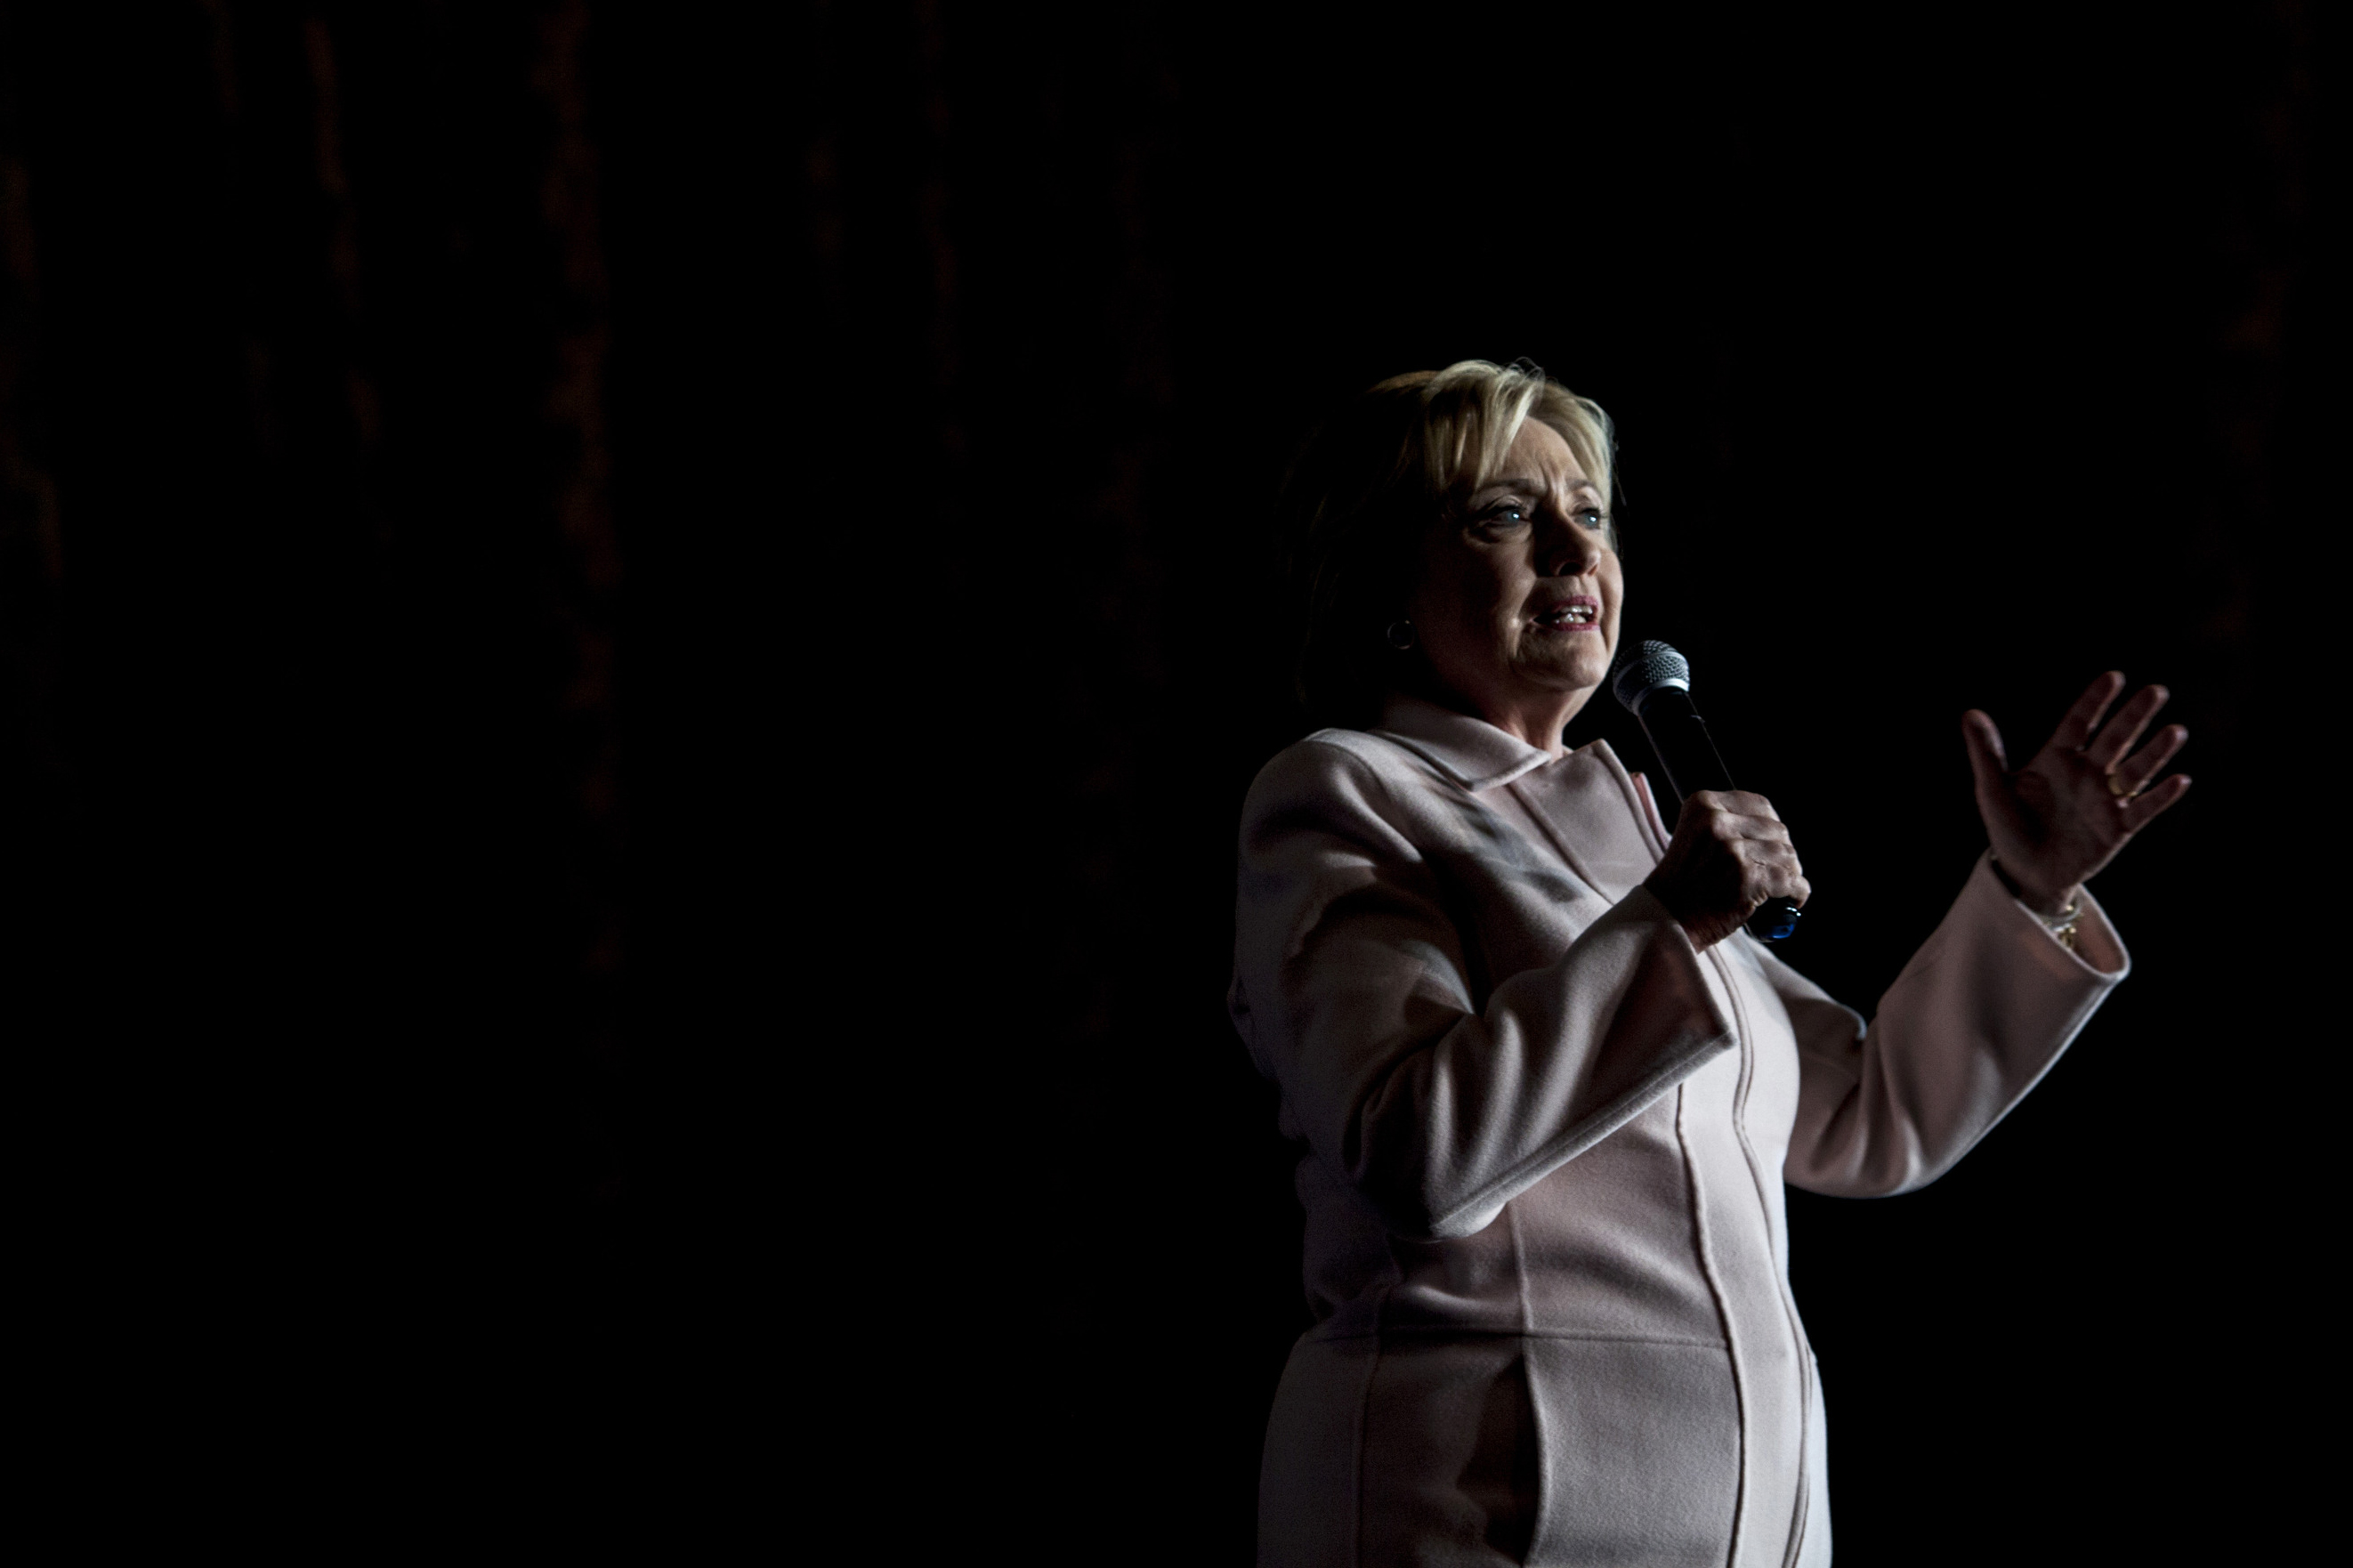 Hillary Clinton speaks during a campaign rally with husband Bill Clinton in Davenport, Iowa on Jan. 29, 2016.